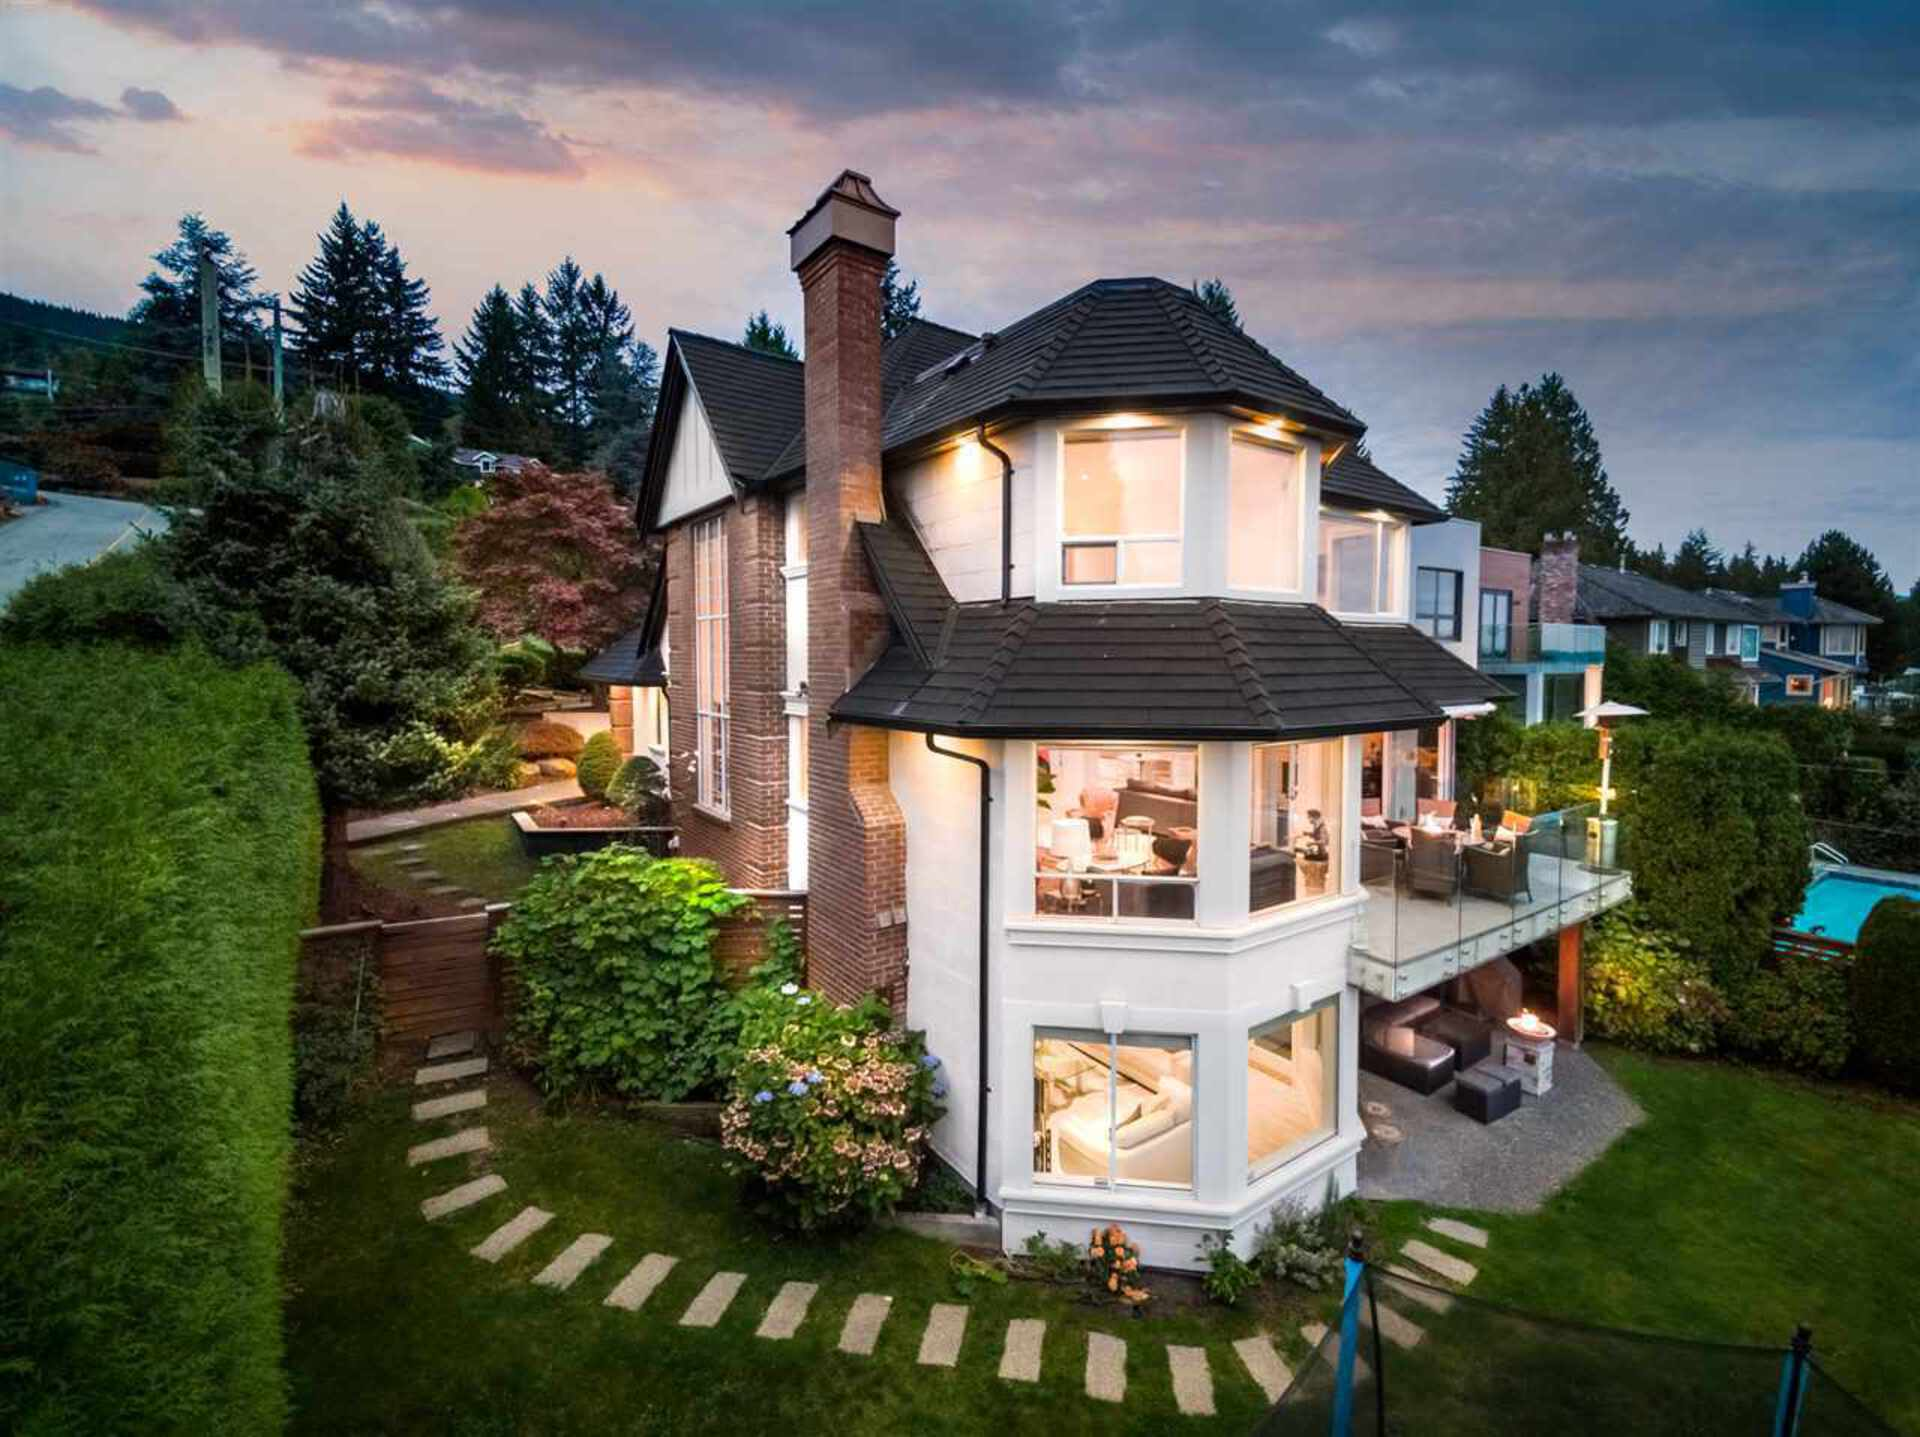 2198-rosebery-avenue-queens-west-vancouver-33 at 2198 Rosebery Avenue, Queens, West Vancouver